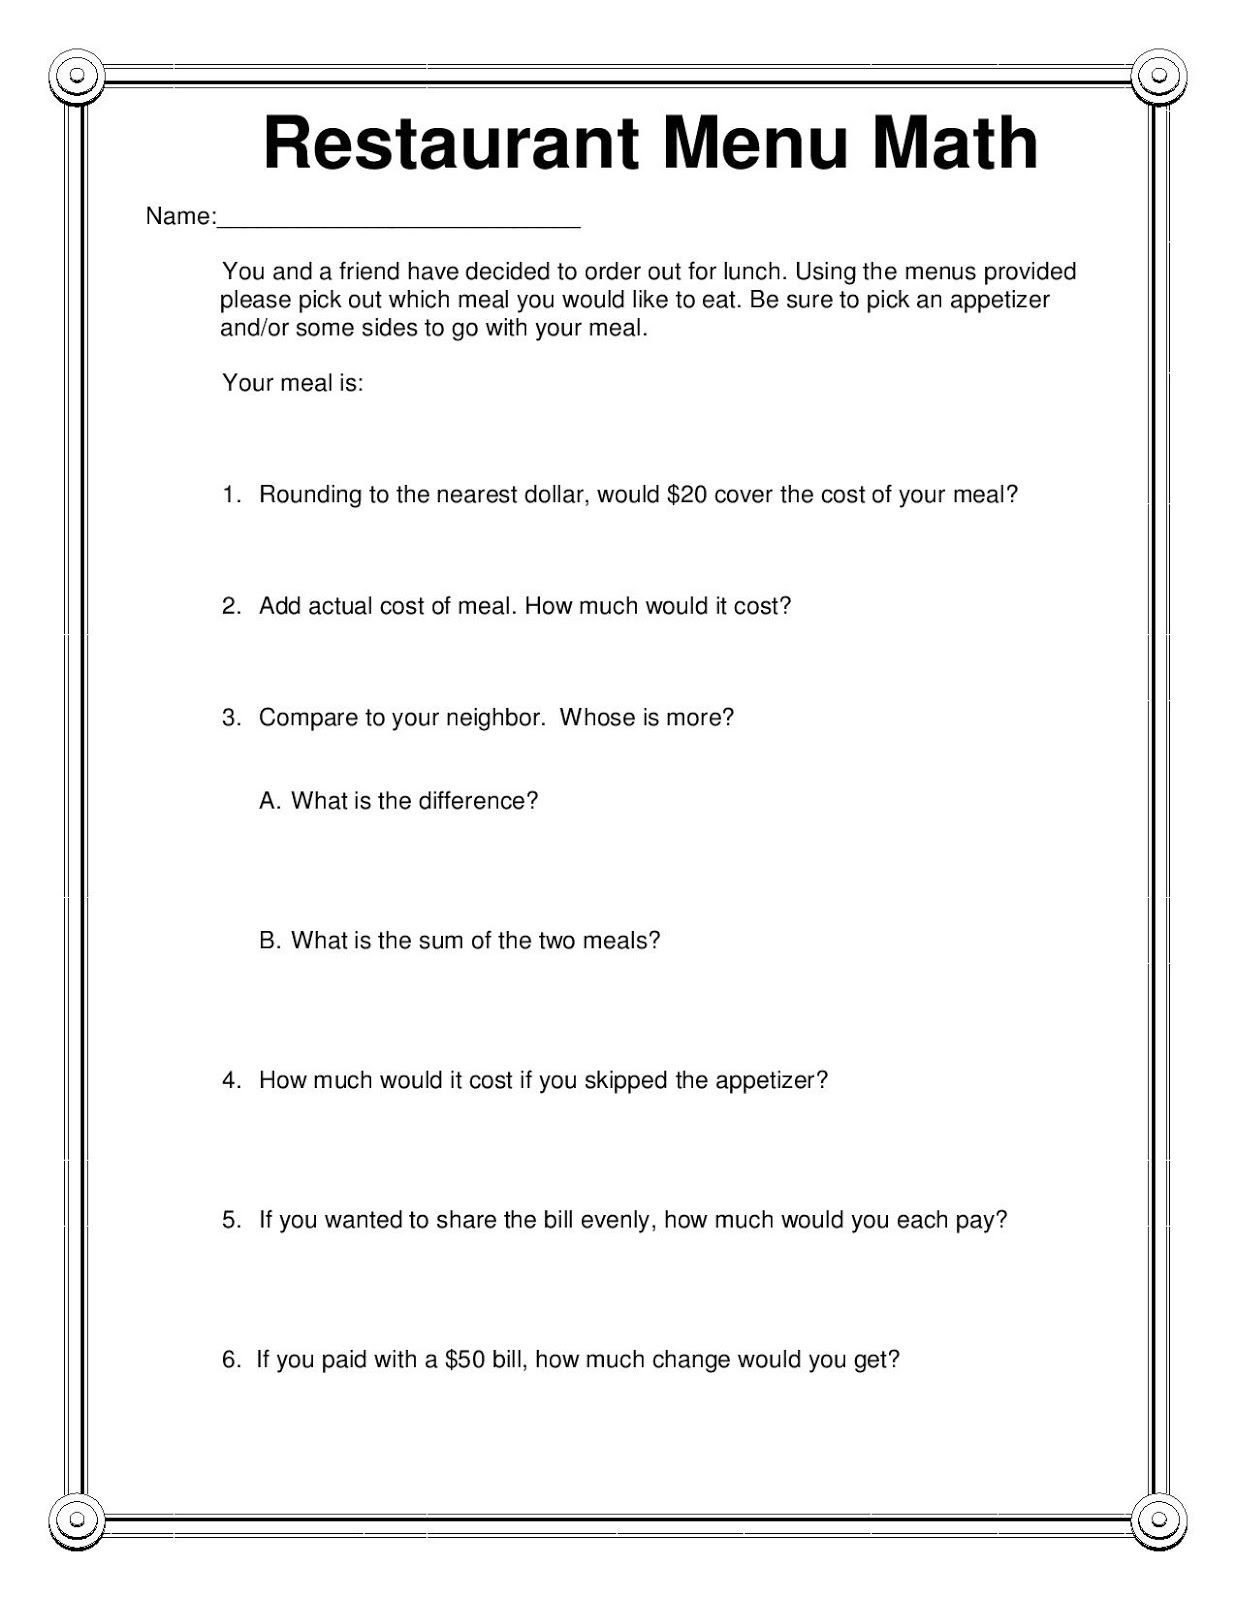 Homophone Worksheets 5th Grade Pin by Bethany Hunter On Things for My Classroom